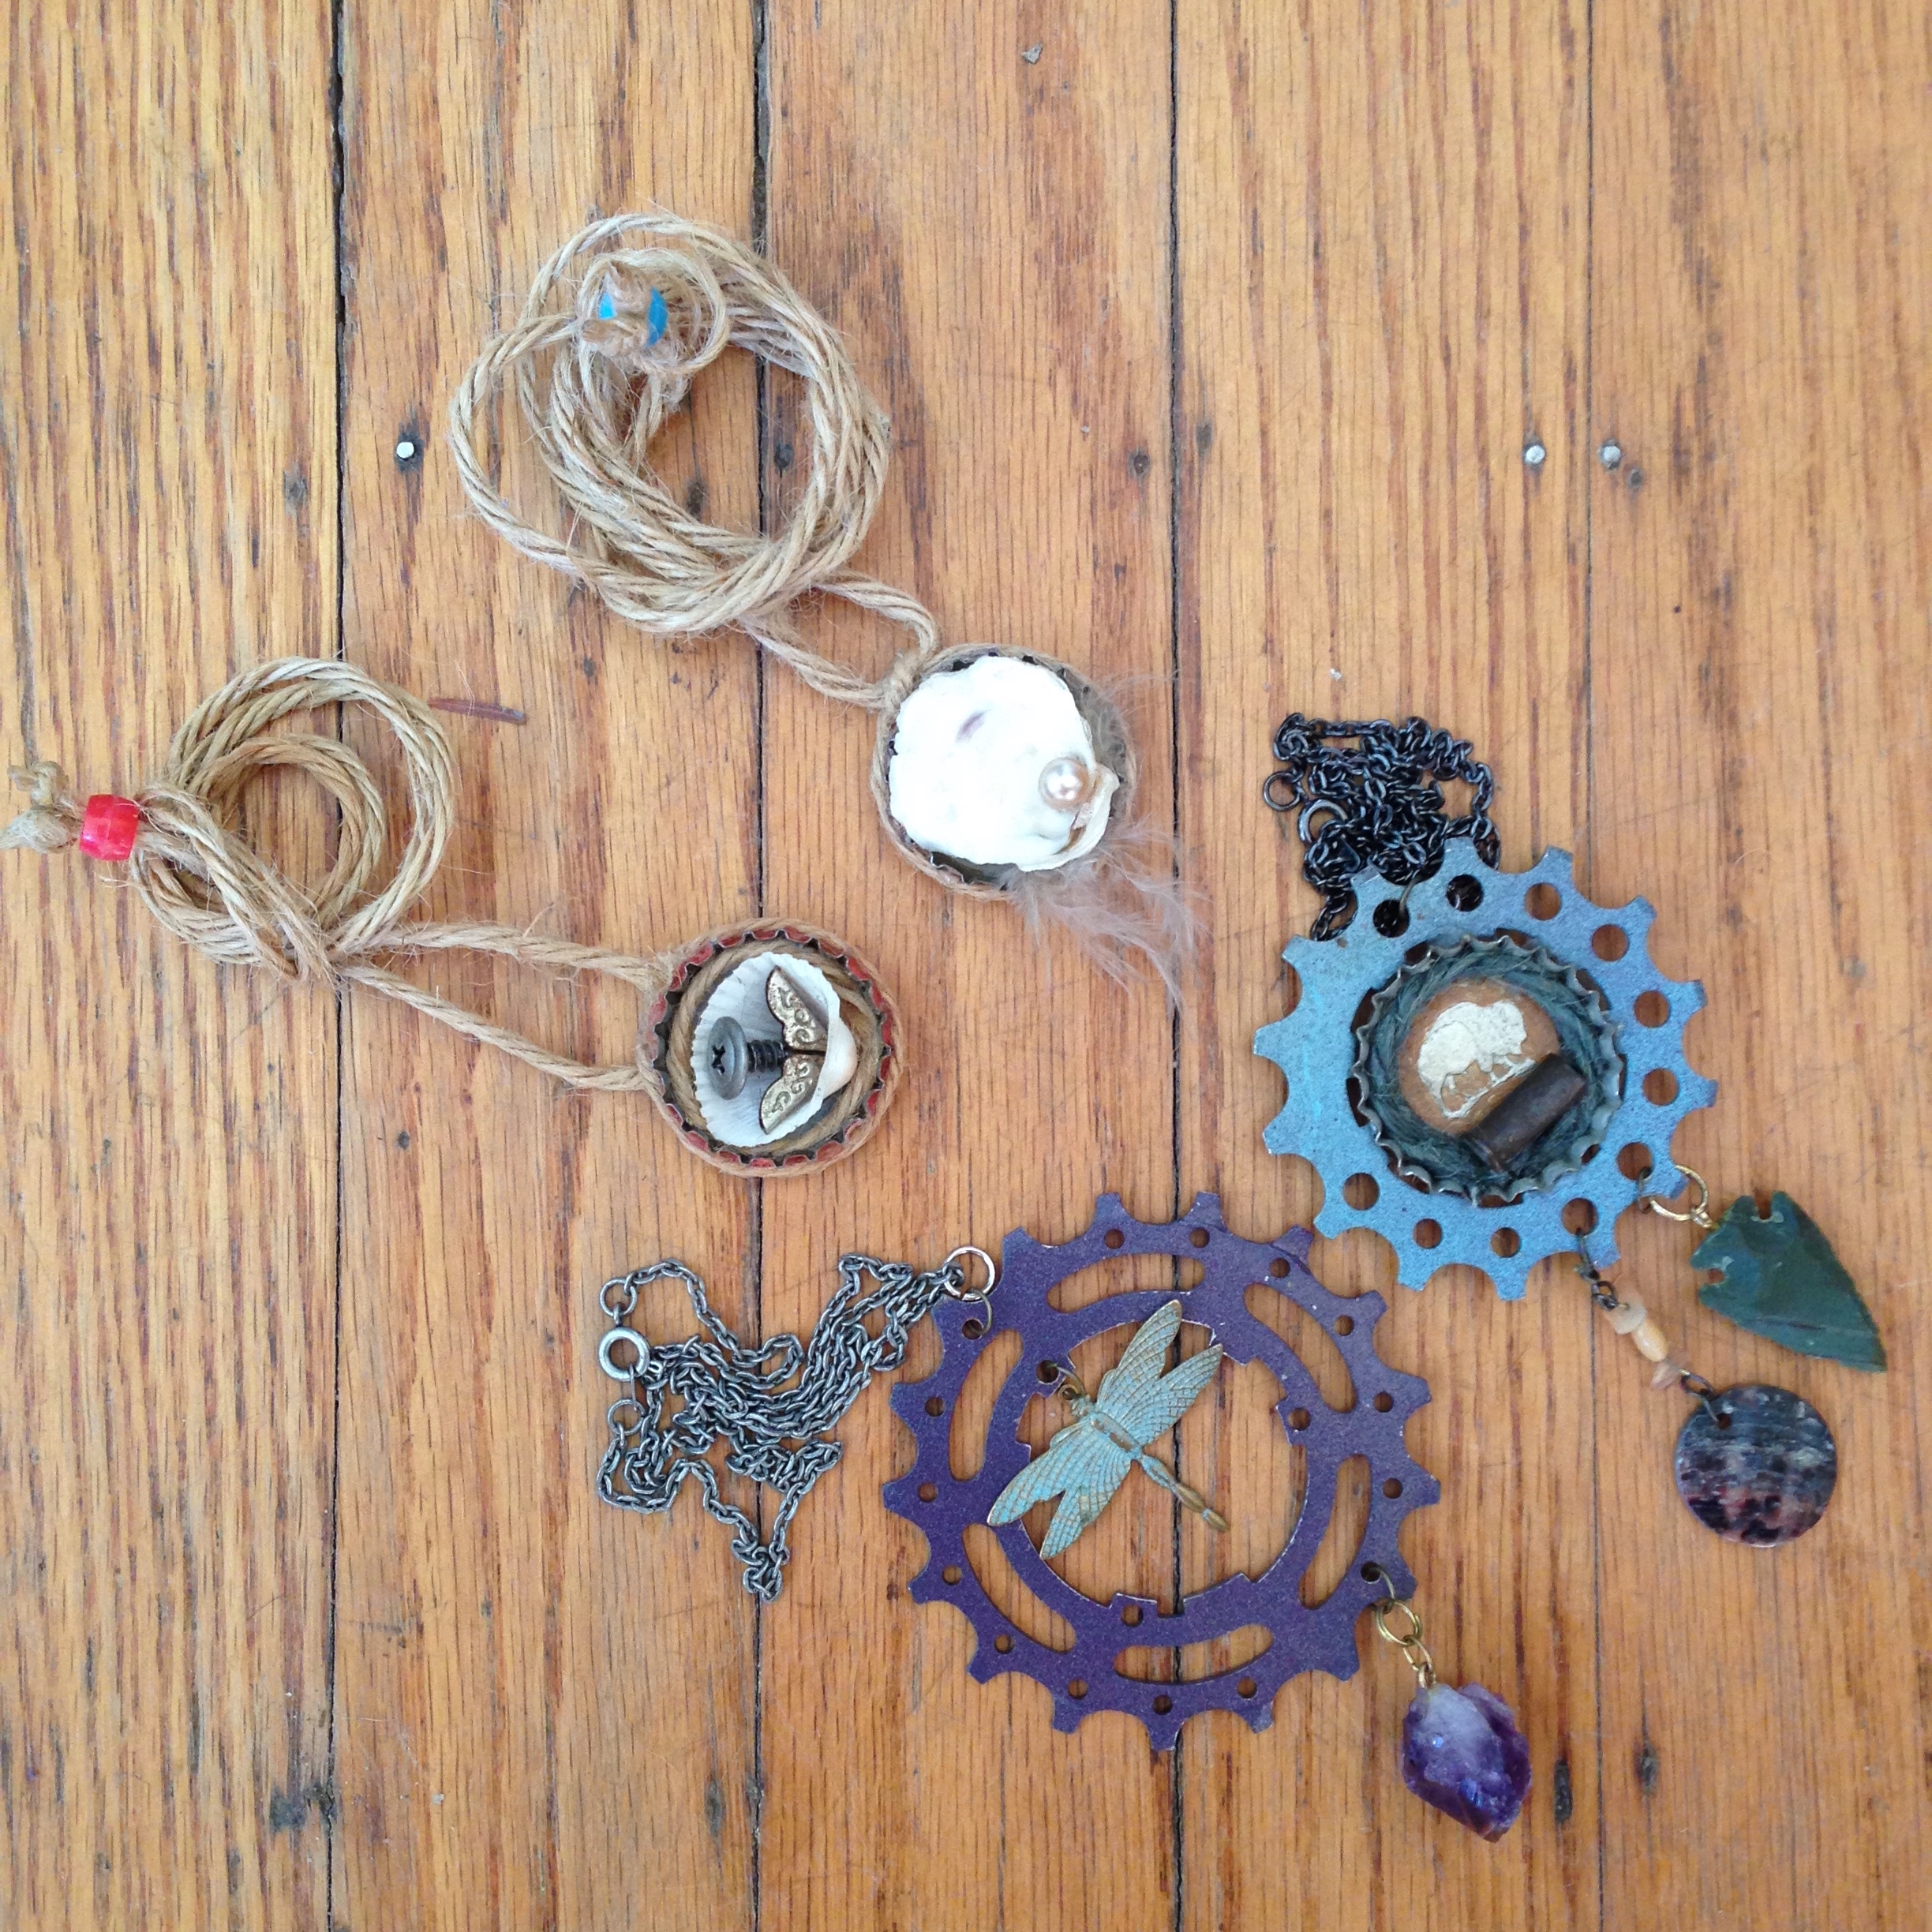 Adjustable bottle cap necklaces and bicycle gears on chains with gemstones.